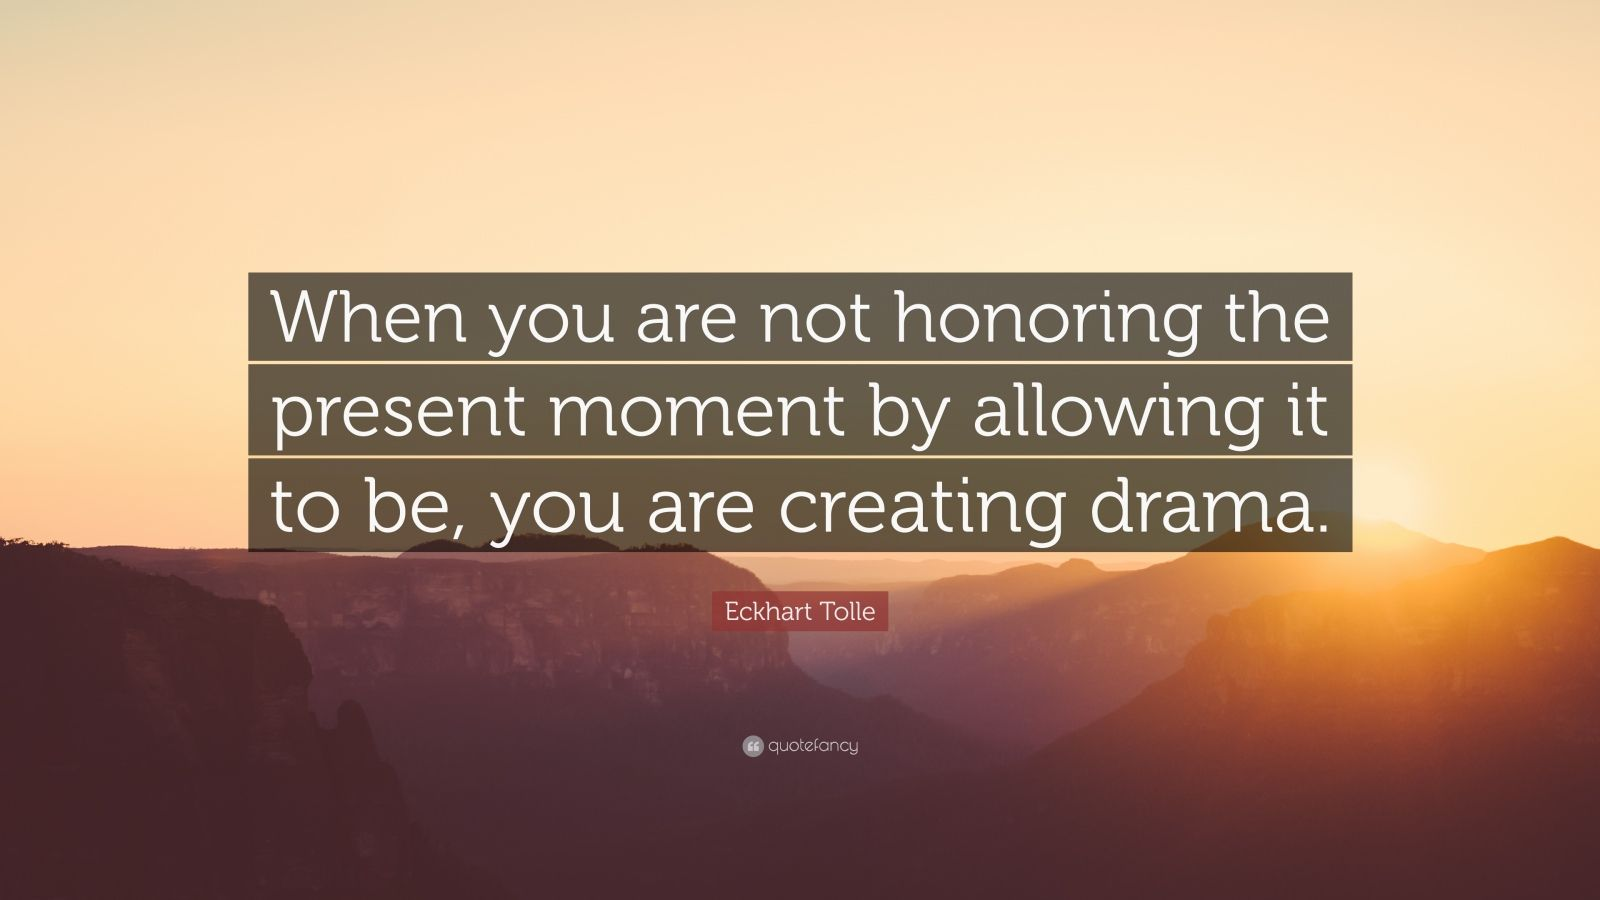 """Eckhart Tolle Quote: """"When you are not honoring the present moment by allowing it to be, you are creating drama."""""""